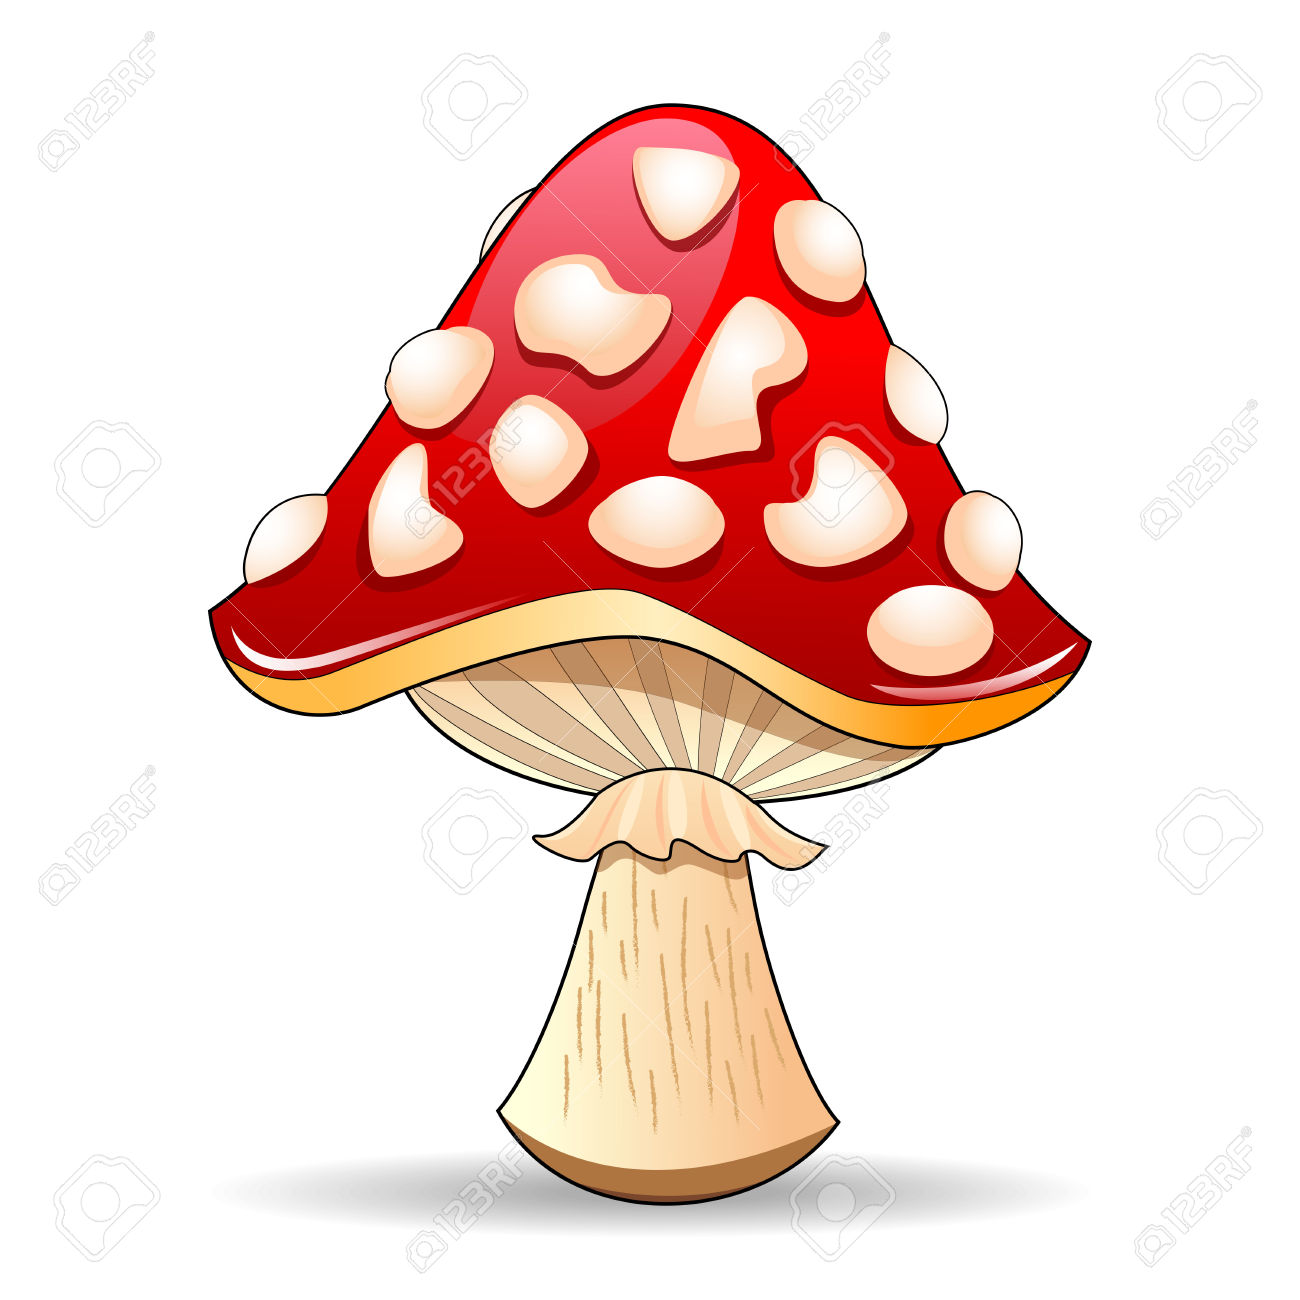 Mushroom Amanita. Spotted Red Mushroom On A White Background.